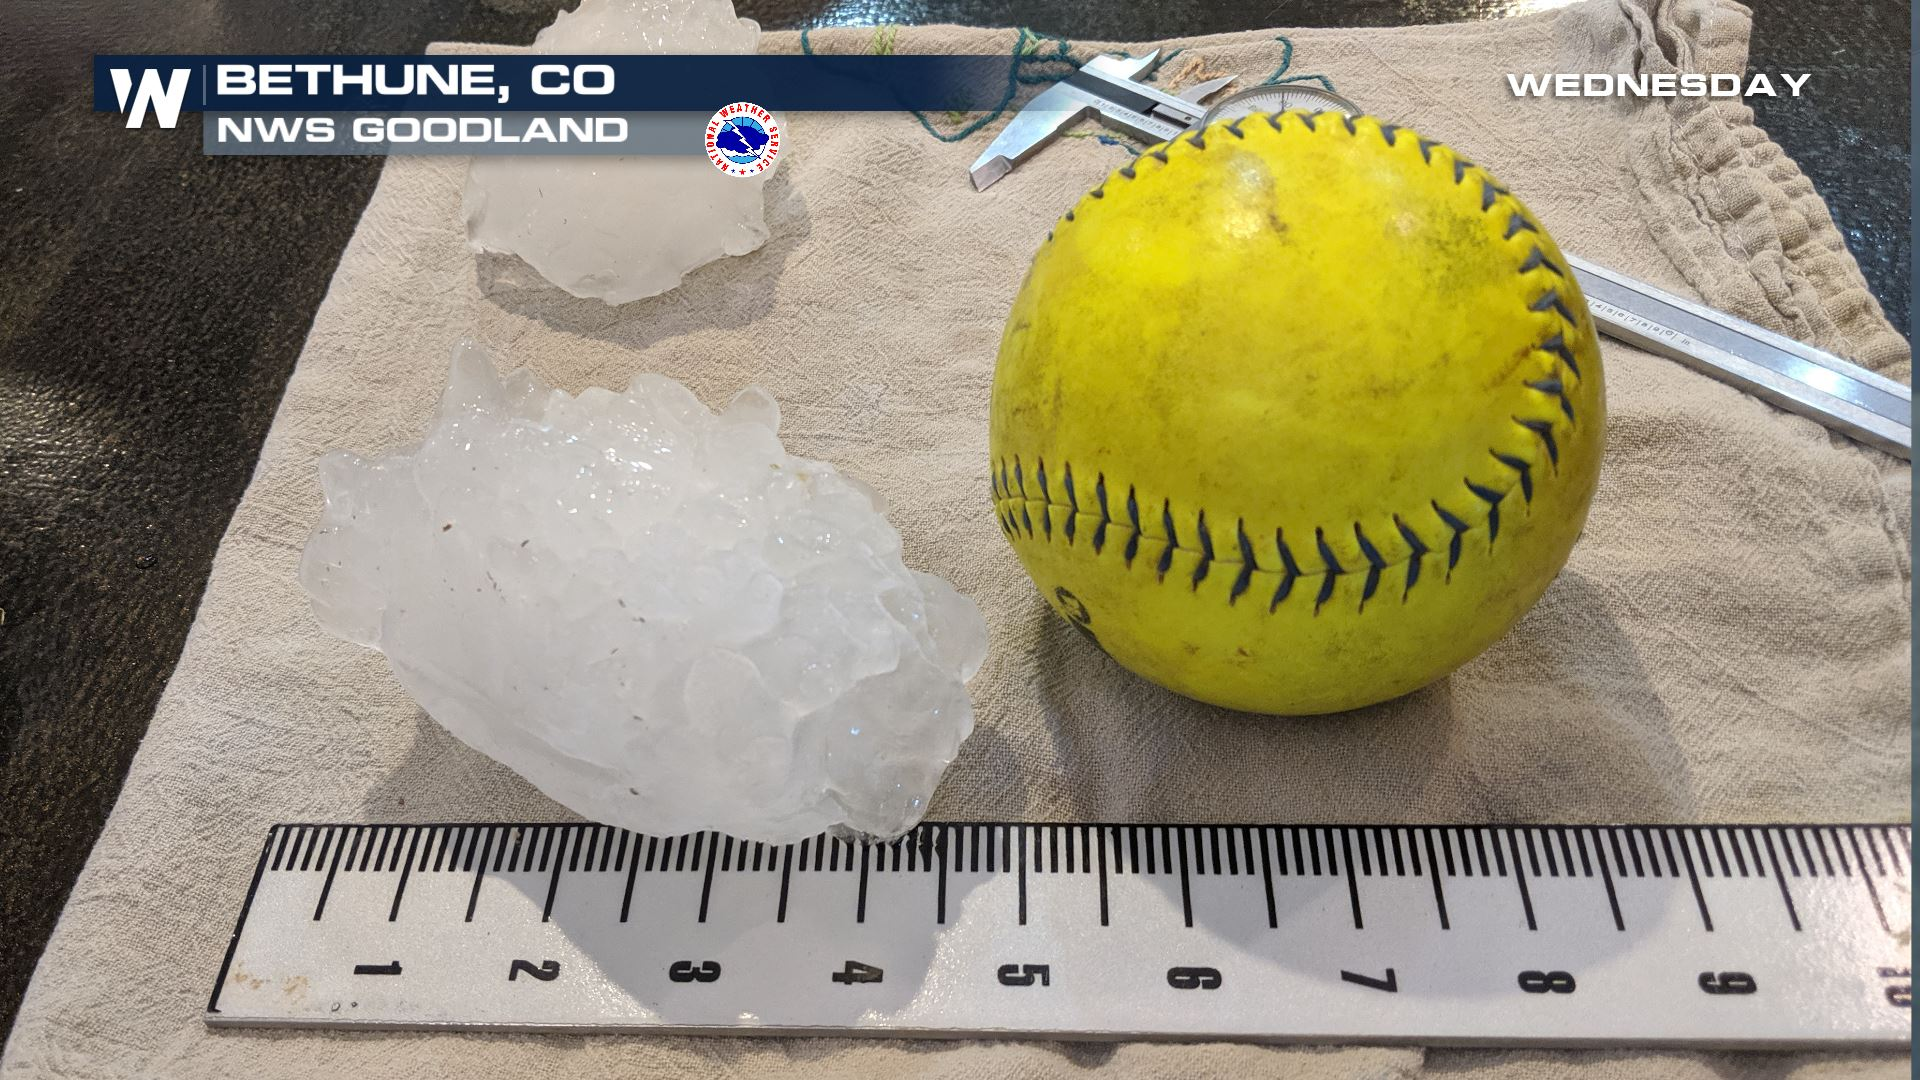 Preliminary State Record For Largest Hail In Colorado